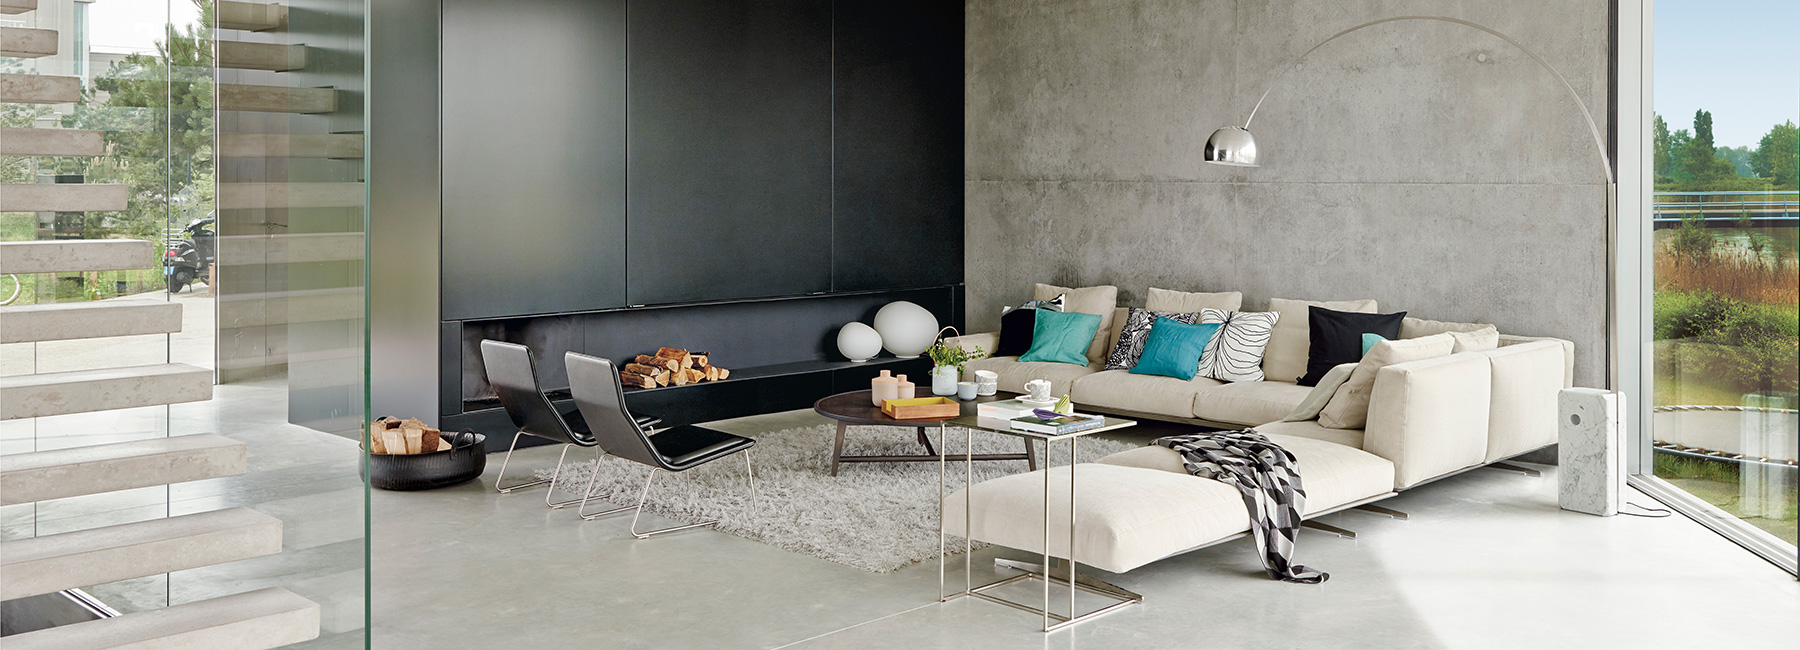 Antonio Citterio City Sofa Flexform Soft Dream Sofa Antonio Citterio Designboom1800